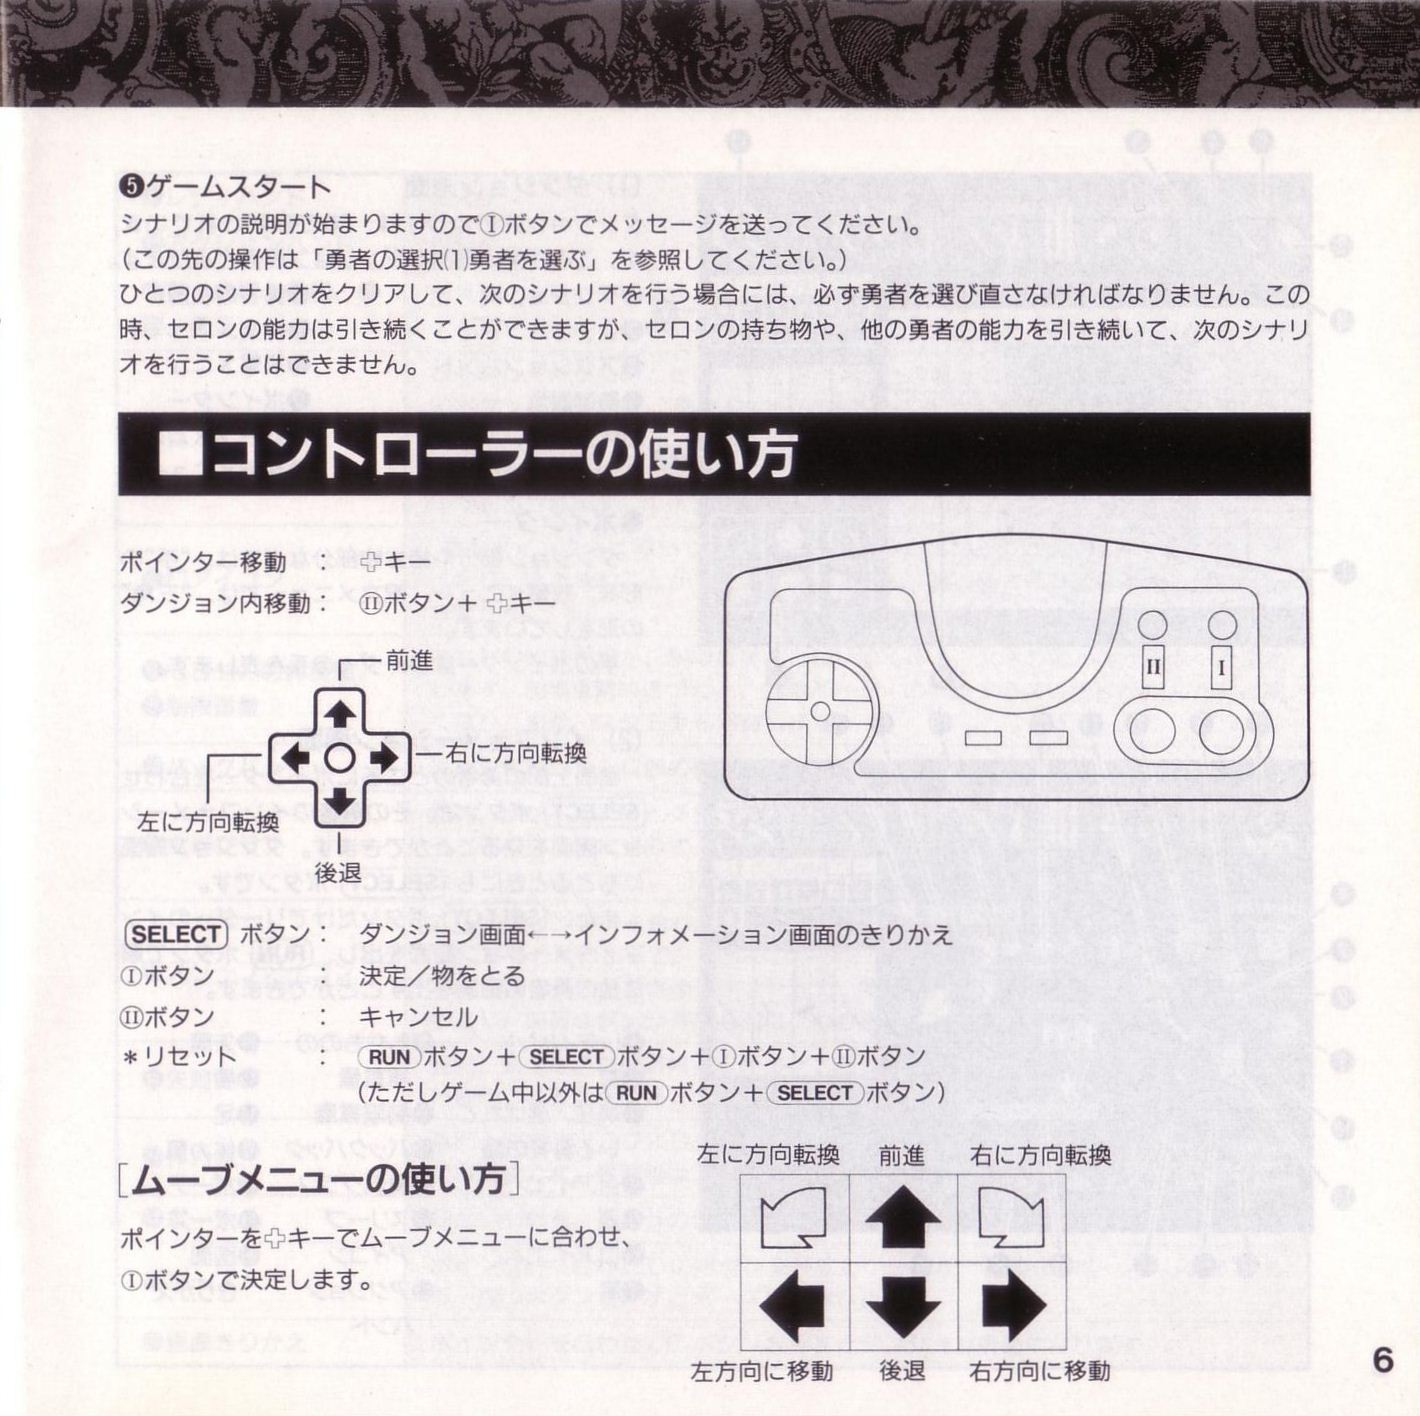 Game - Theron's Quest - JP - PC Engine - Booklet - Page 009 - Scan